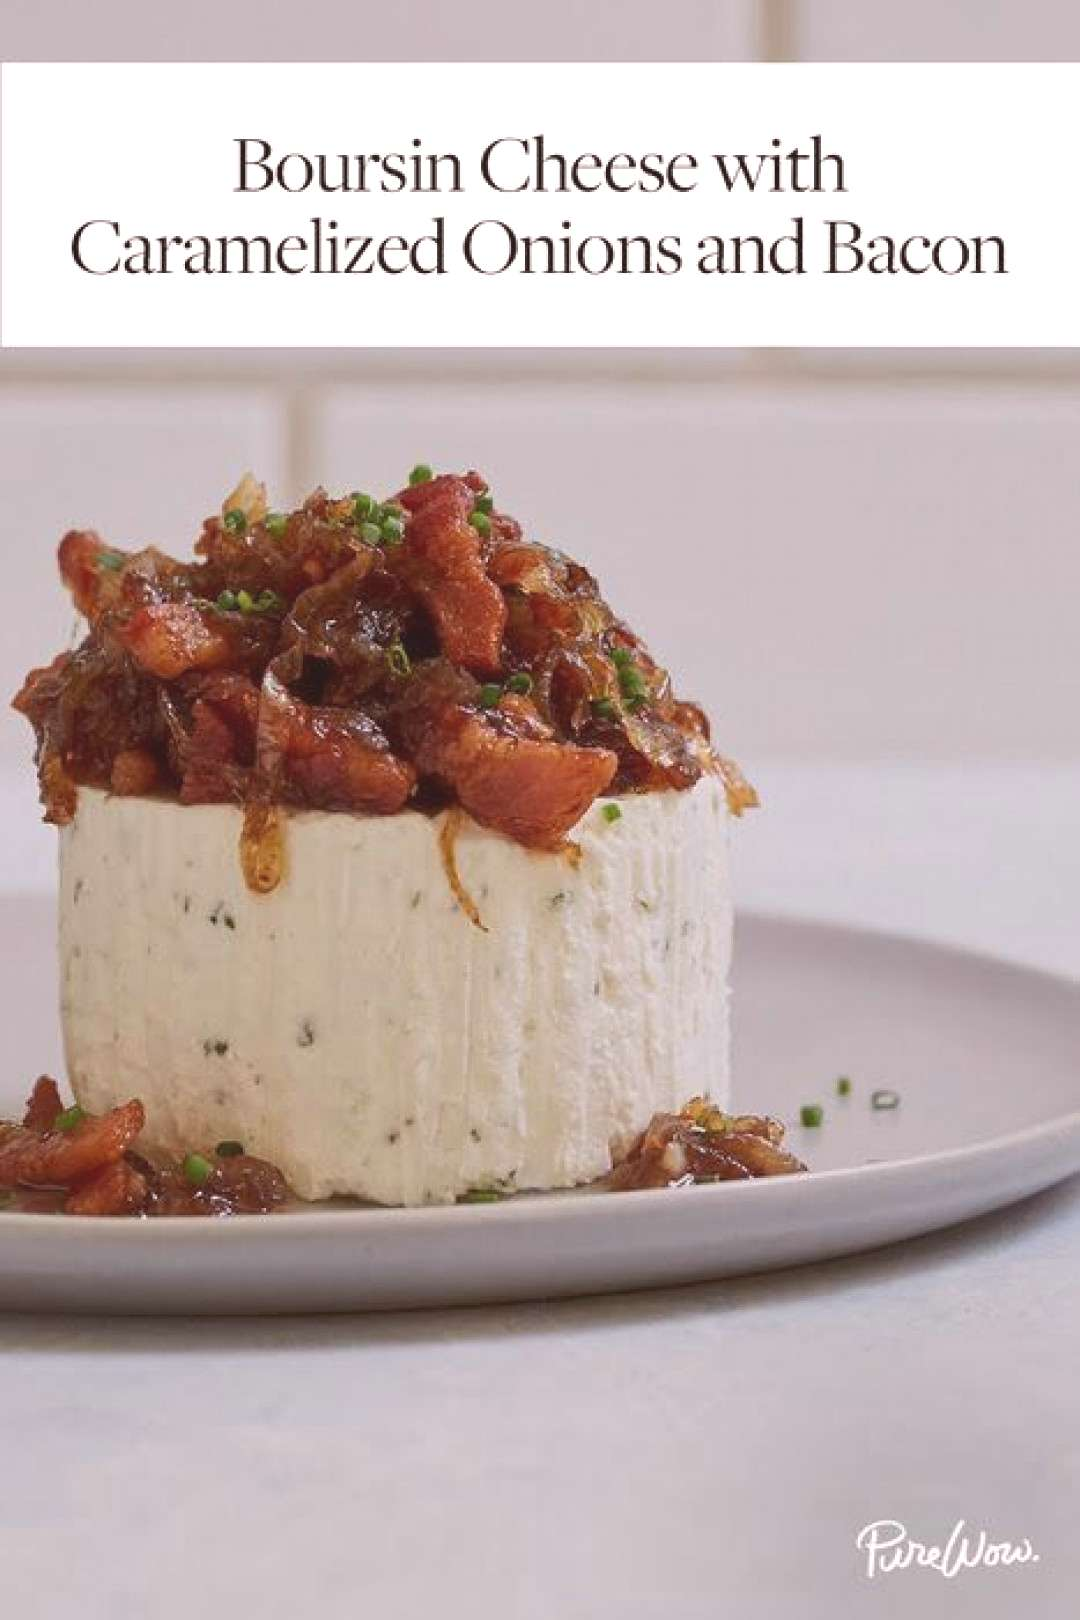 Boursin Cheese with Caramelized Onions and Bacon -